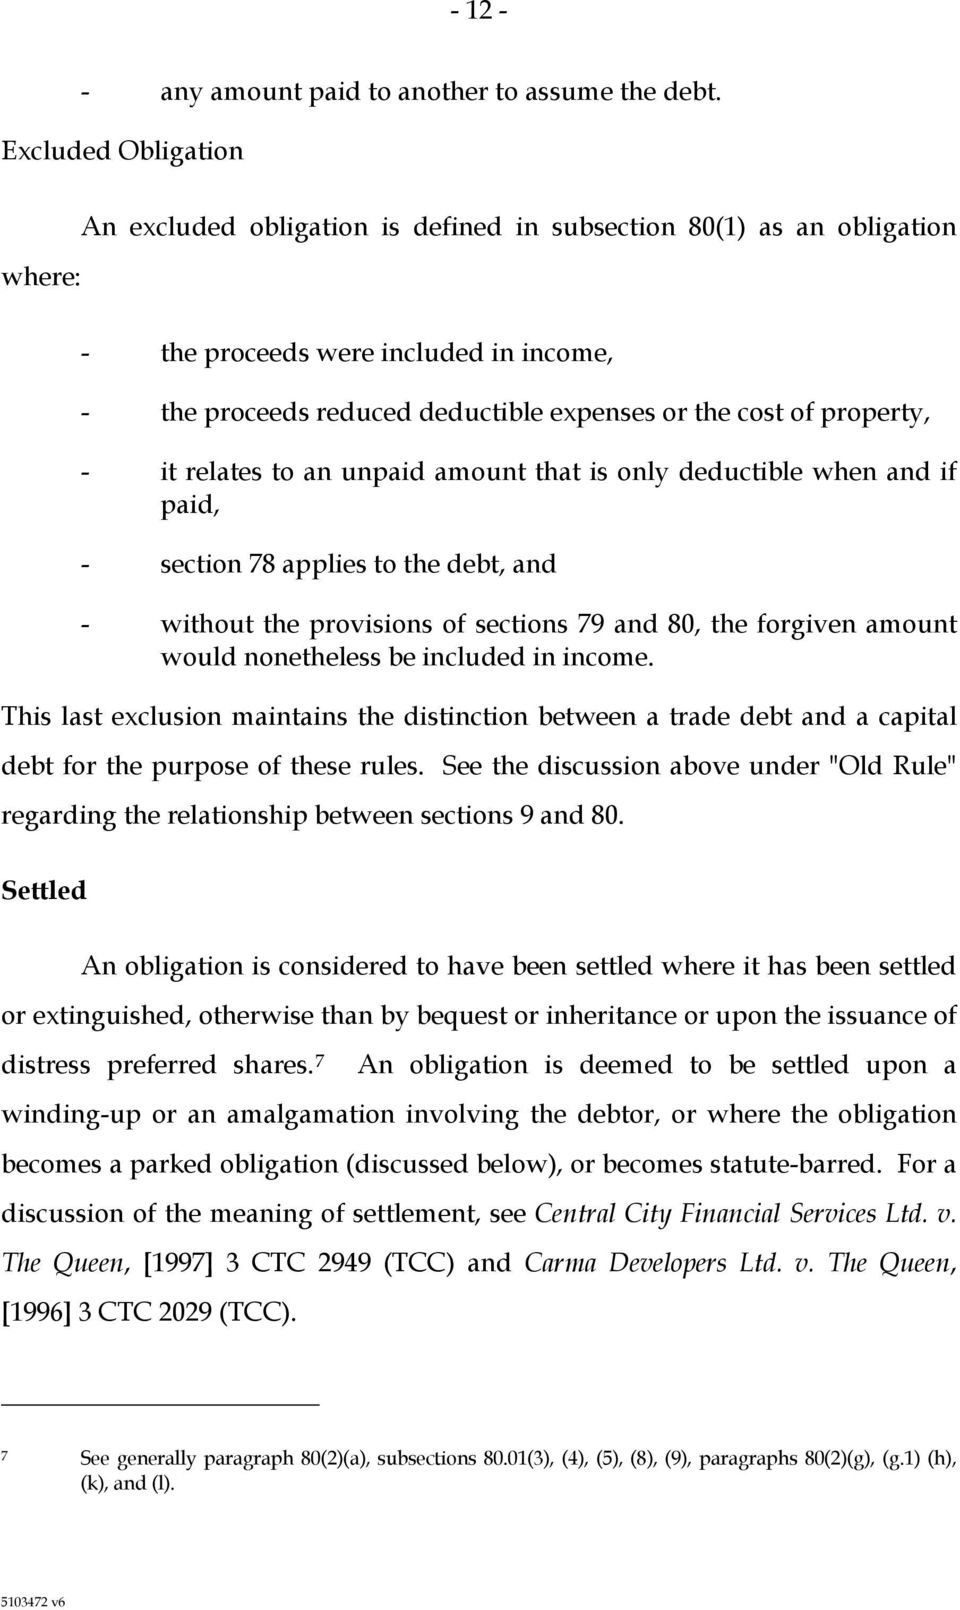 property, - it relates to an unpaid amount that is only deductible when and if paid, - section 78 applies to the debt, and - without the provisions of sections 79 and 80, the forgiven amount would